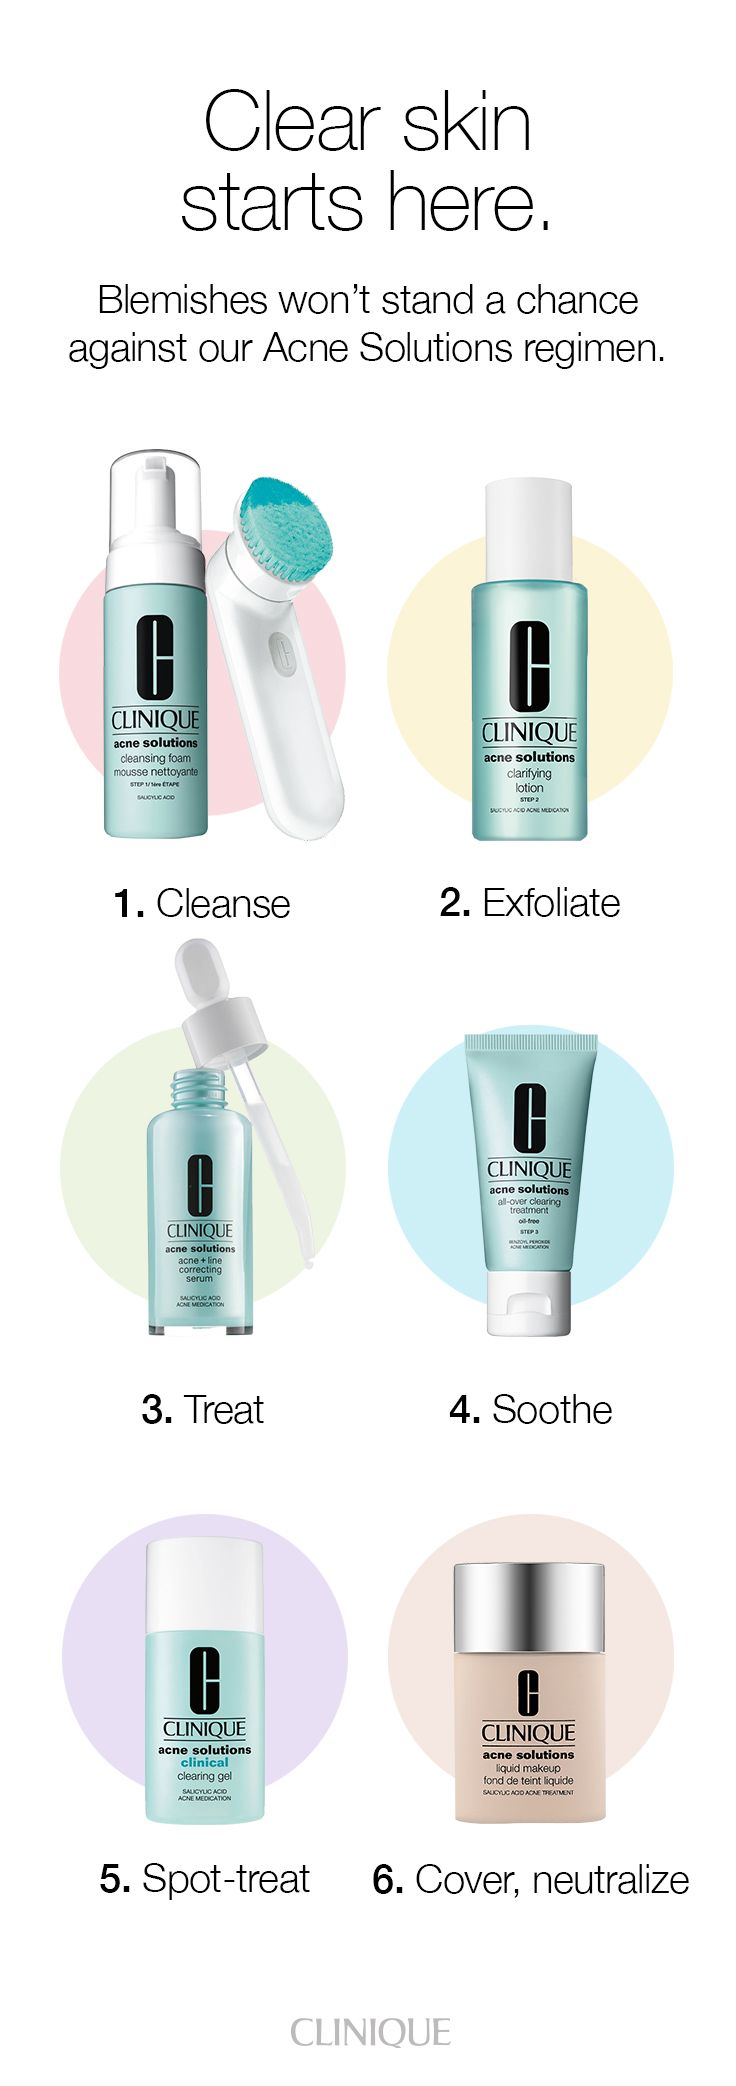 How to treat acne: Blemishes won't stand a chance against our Acne Solutions regimen. It's clinically proven on men and women to fight active blemishes. You'll see a 37% improvement in 3 days—and it just keeps getting better. Clear skin starts here.